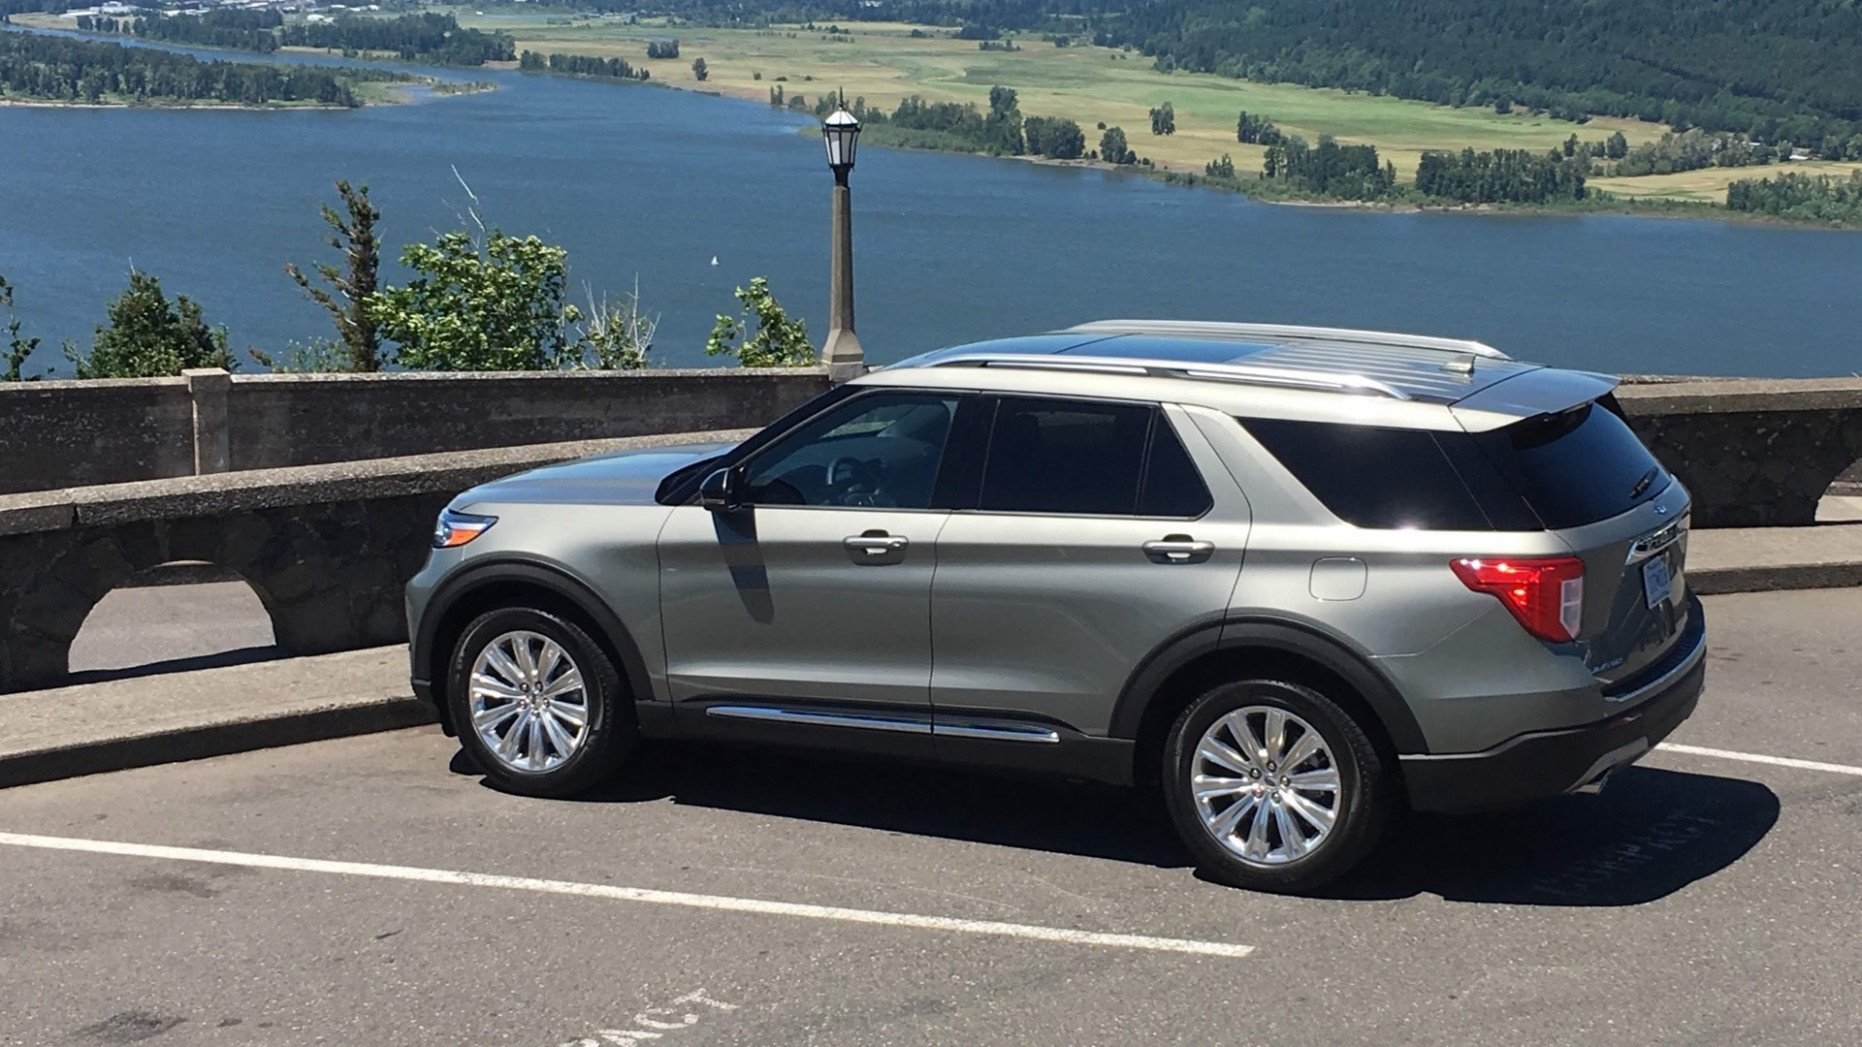 8 Ford Explorer Hybrid first drive review: Muscle over mpg